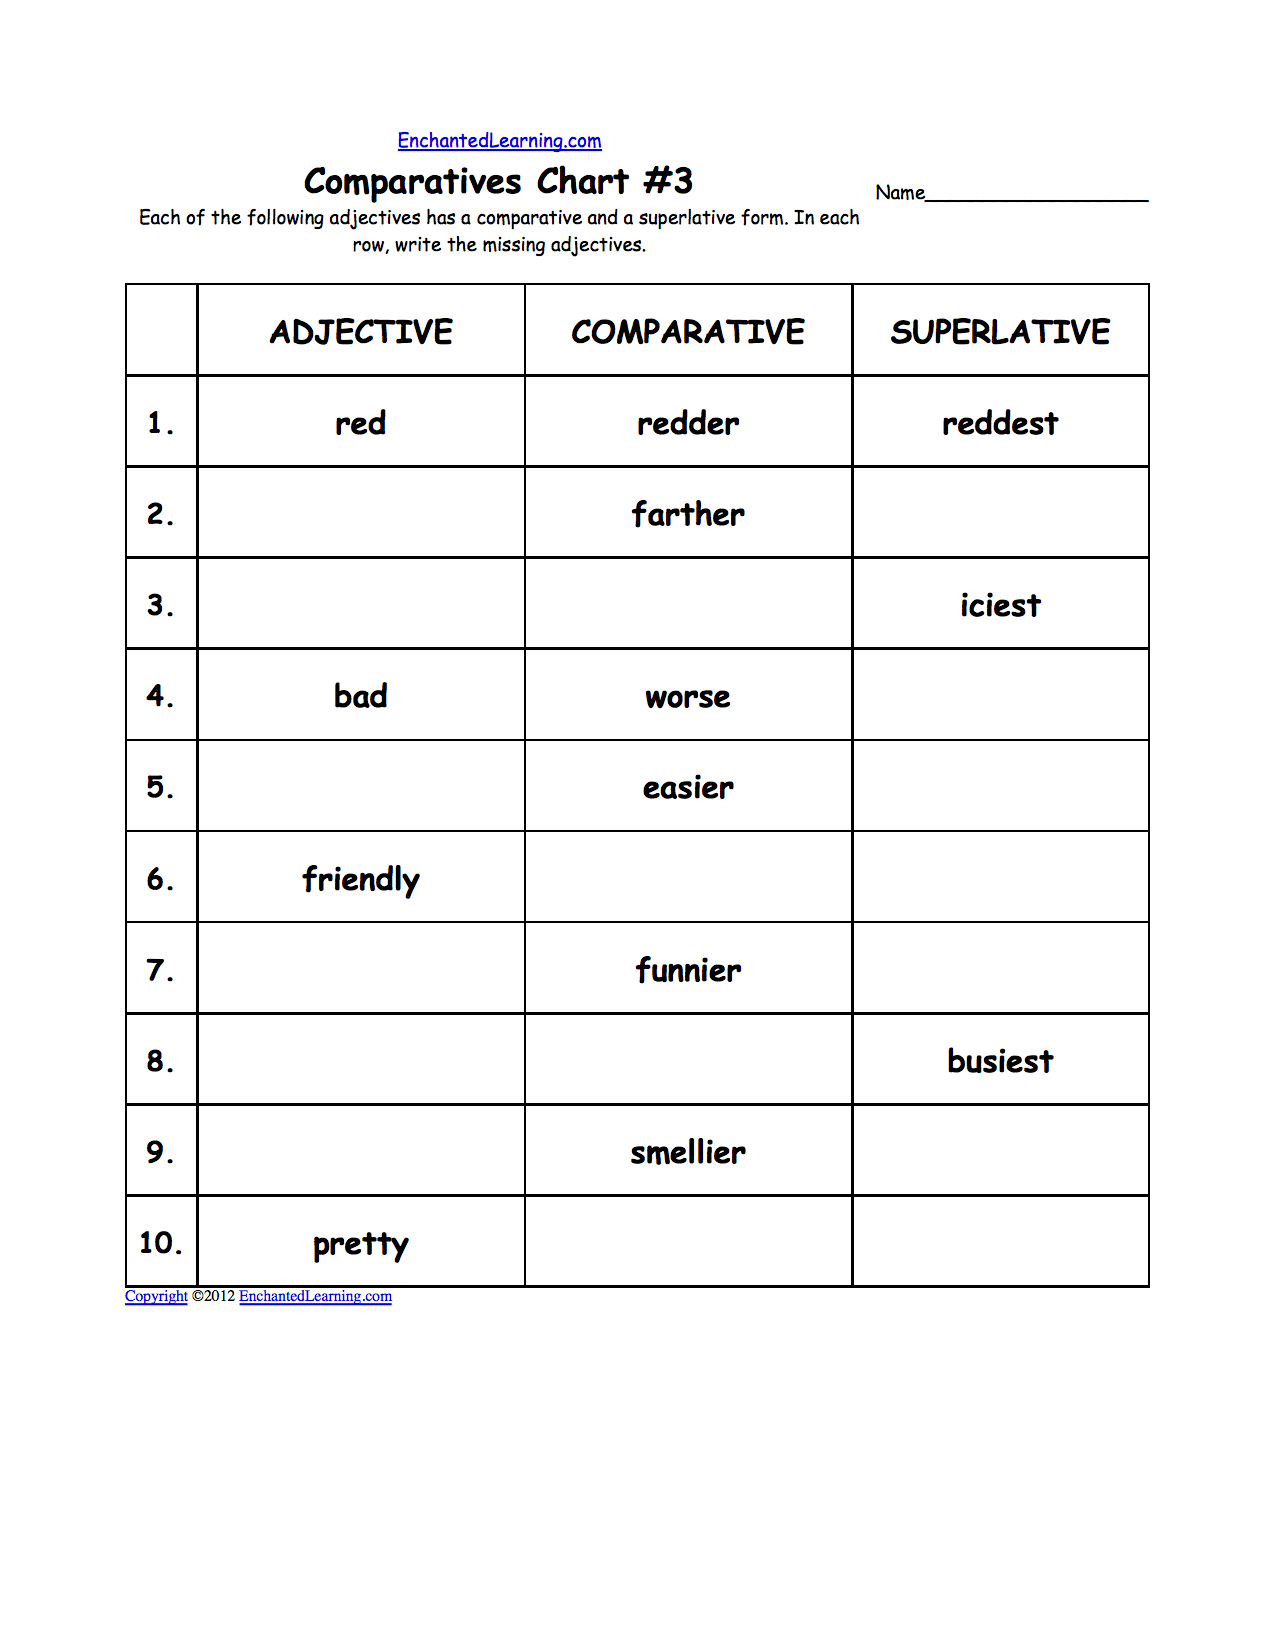 worksheet Comparatives And Superlatives Worksheets comparative and superlative adjectives enchantedlearning com com